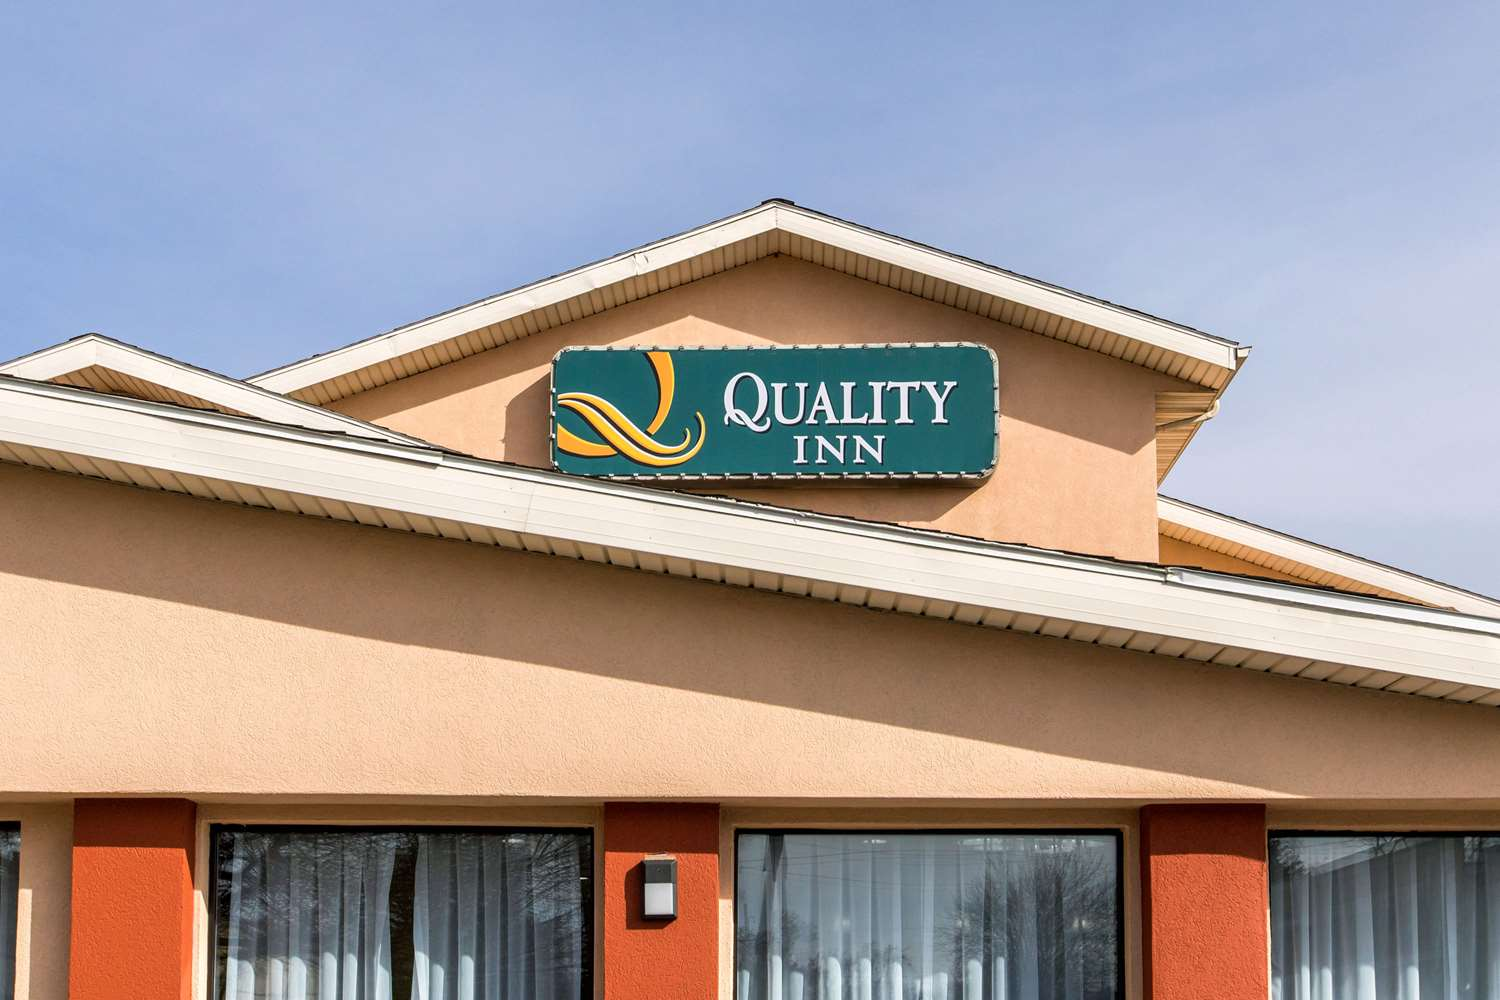 Exterior view - Quality Inn Wyoming Grand Rapids